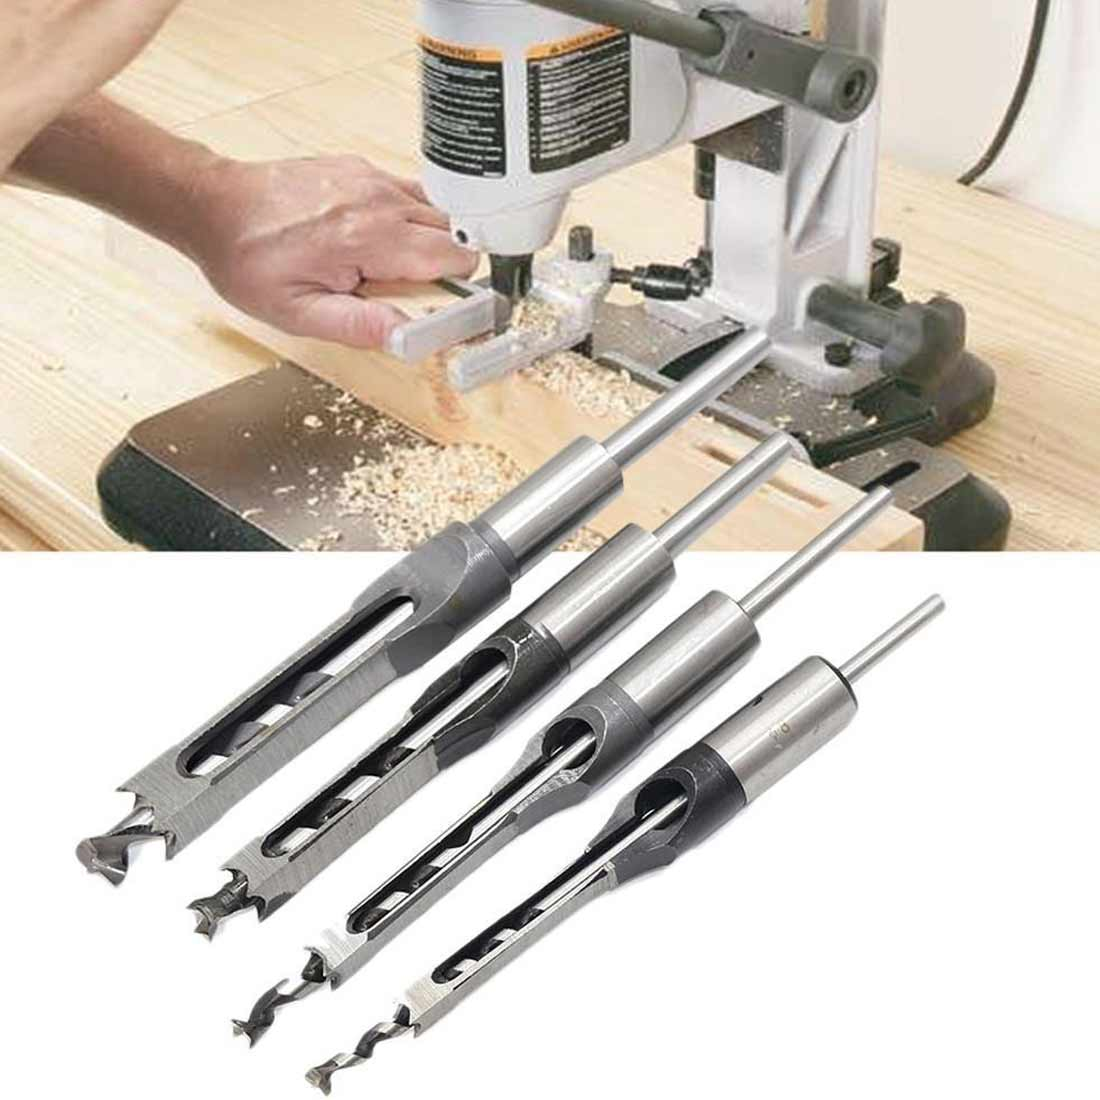 4 Pieces / Set Of Hollow Square Hole Hole Saw Chisel Spiral Drill Woodworking Tools Square Hole Drill